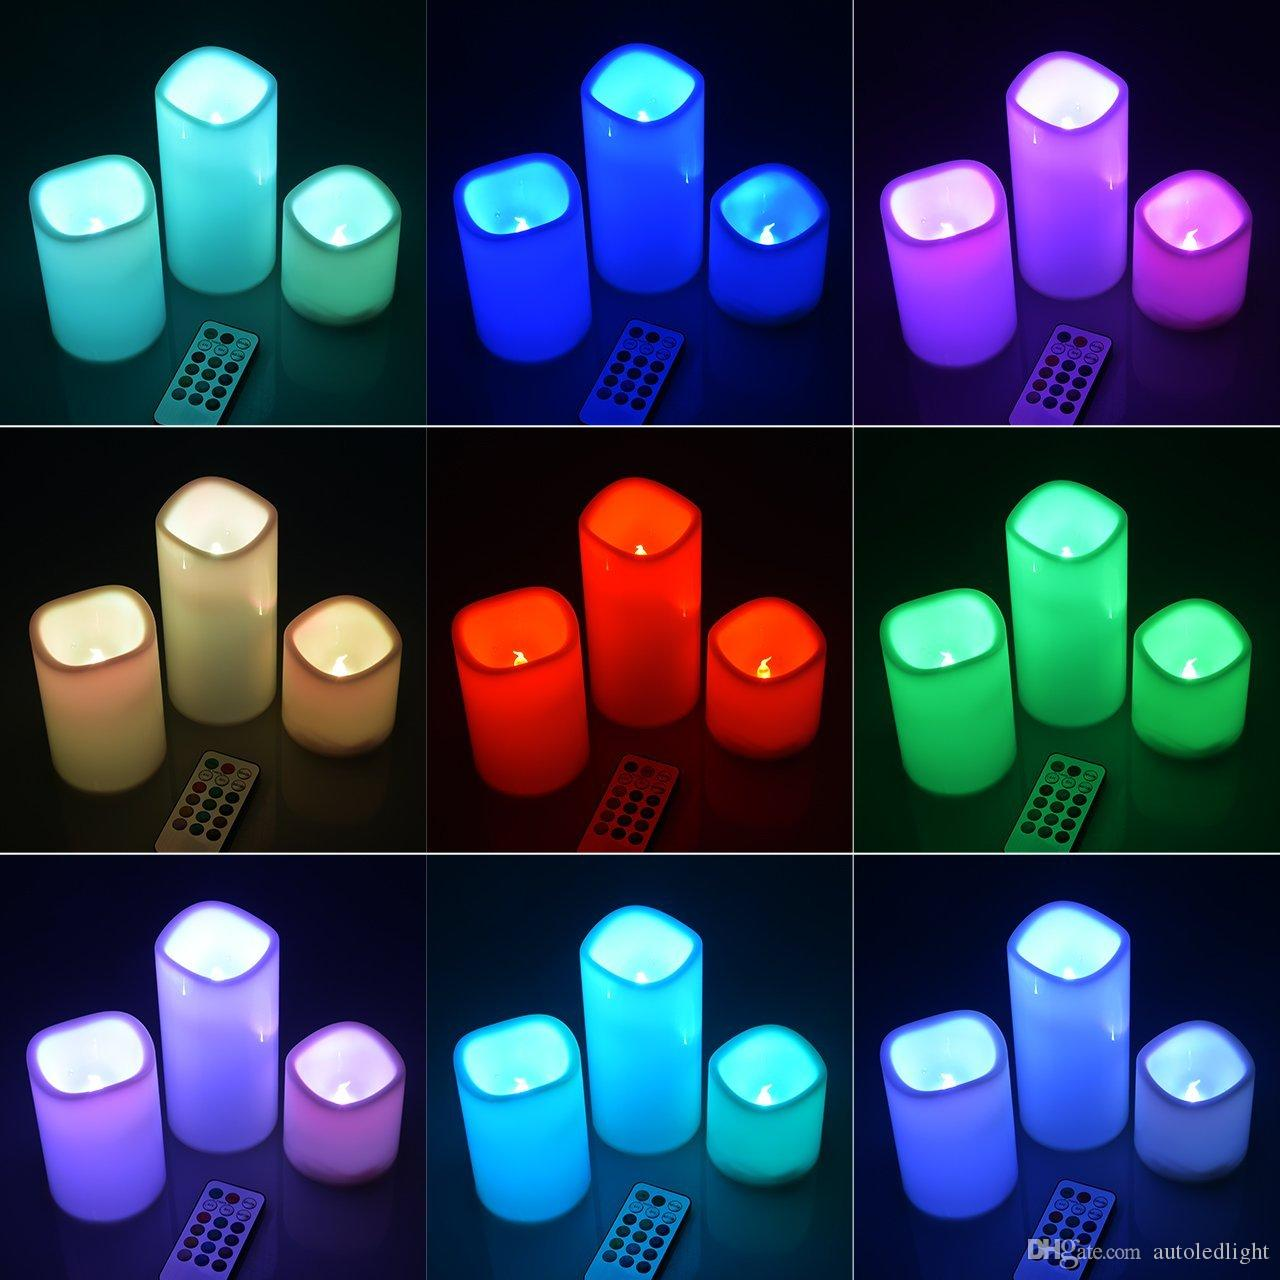 Wax Flameless LED Candles light With Remote Control Timer 3 Candle Indoor Night Party Light Decor for Wedding birthday Party Christmas